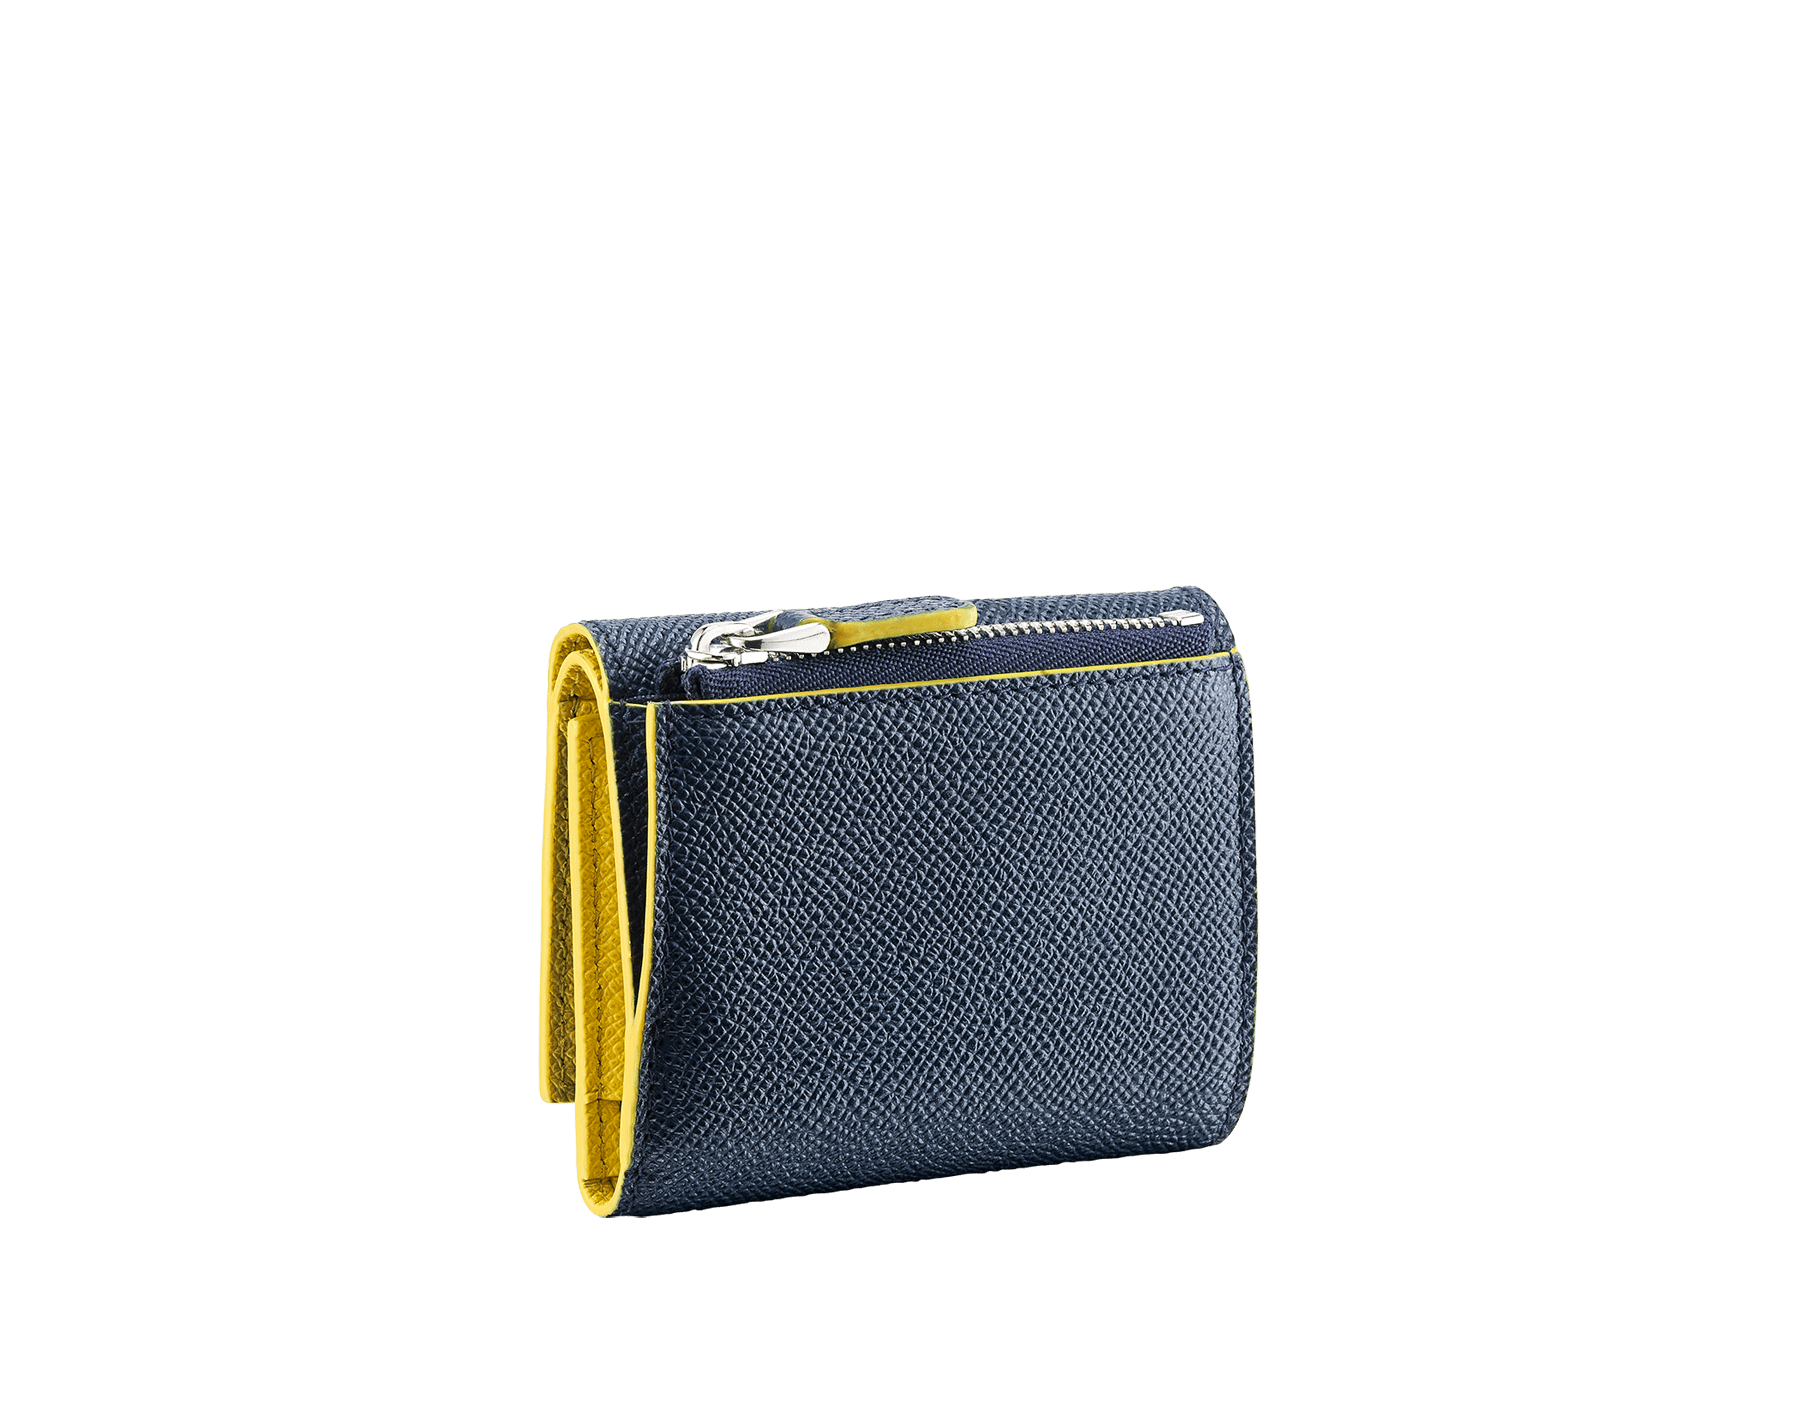 BVLGARI BVLGARI slim compact wallet in denim sapphire and daisy topaz grain calf leather. Iconic logo closure clip in palladium-plated brass. BCM-SLIMCOMPACTb image 3